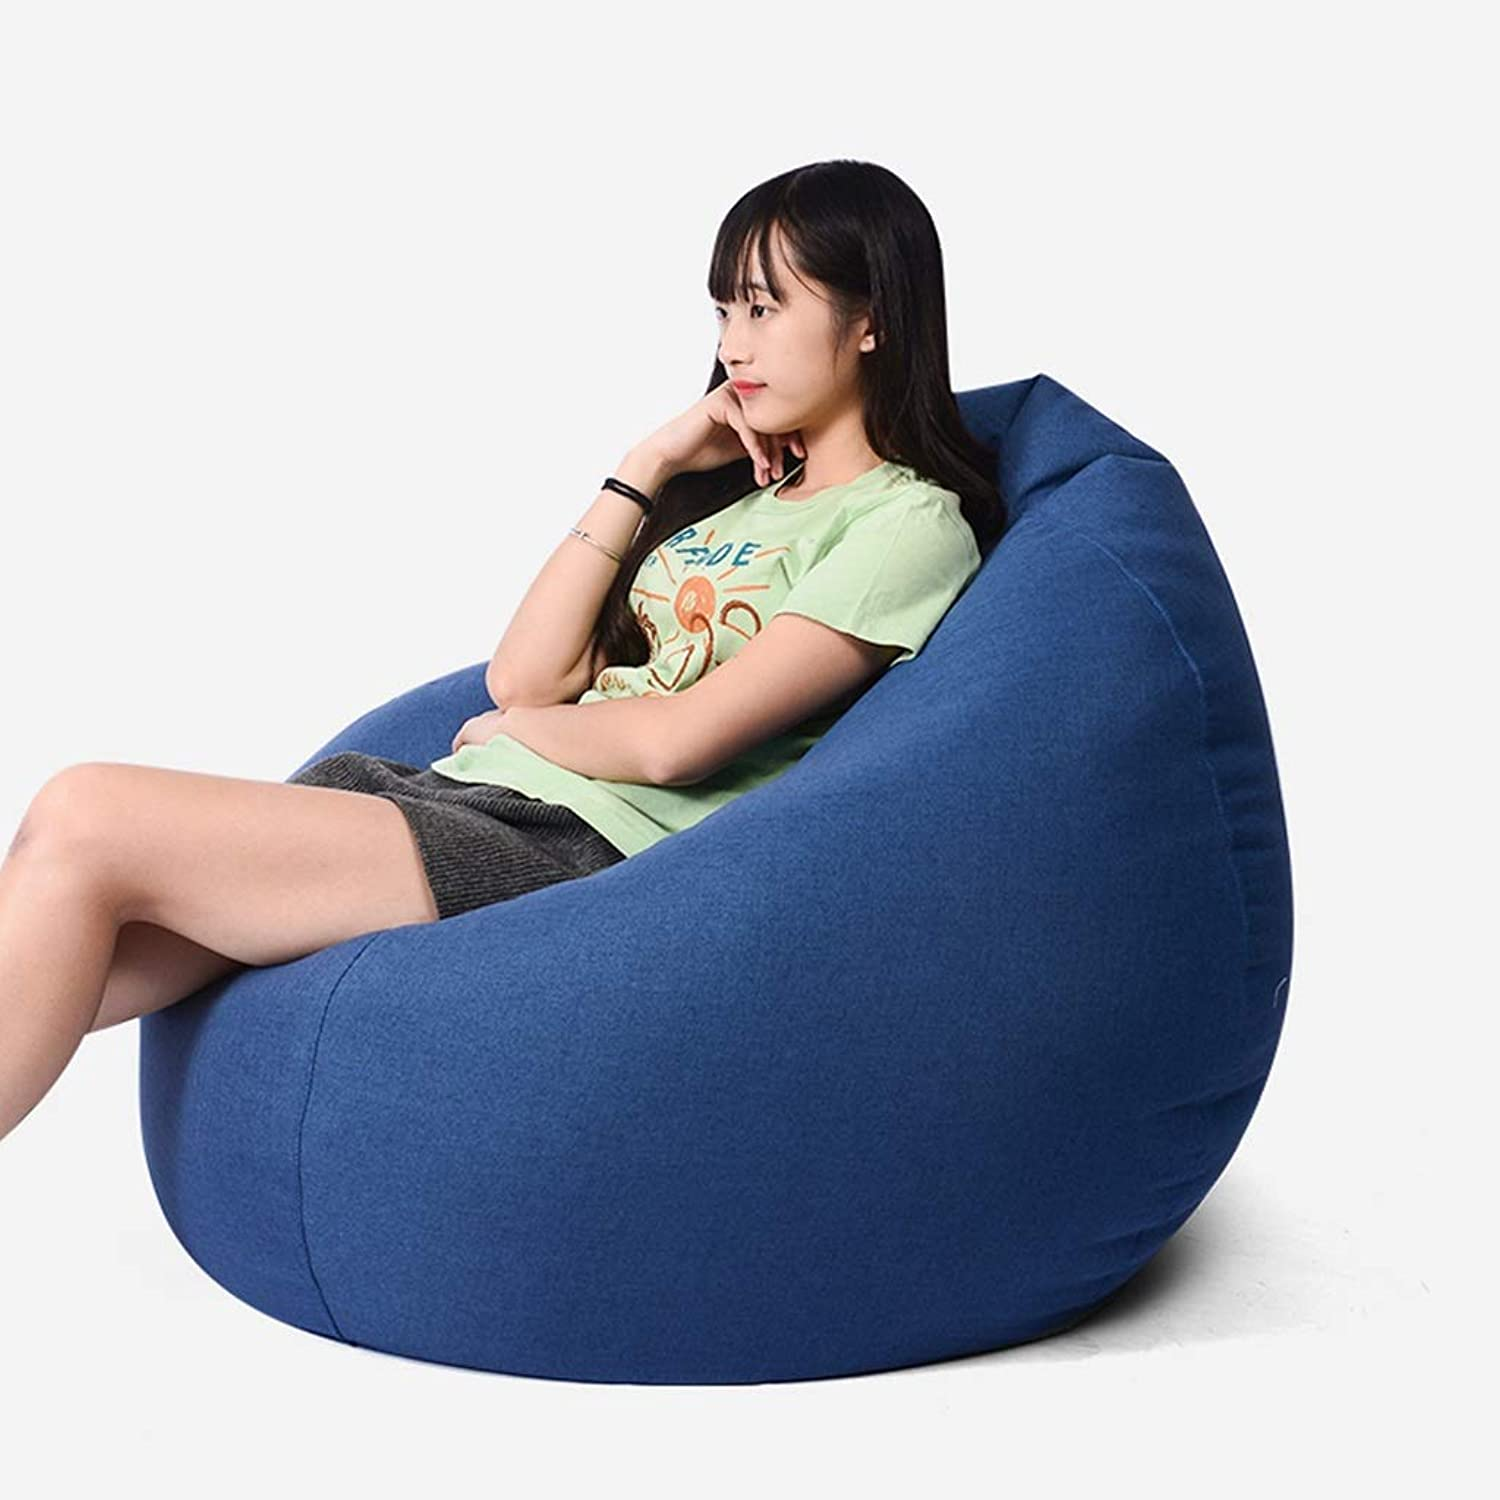 Beanbag Chairs Comfy Chair for Gaming Lazy Chair Sofa Extra Large Bean Bag Chair (color   A, Size   S)